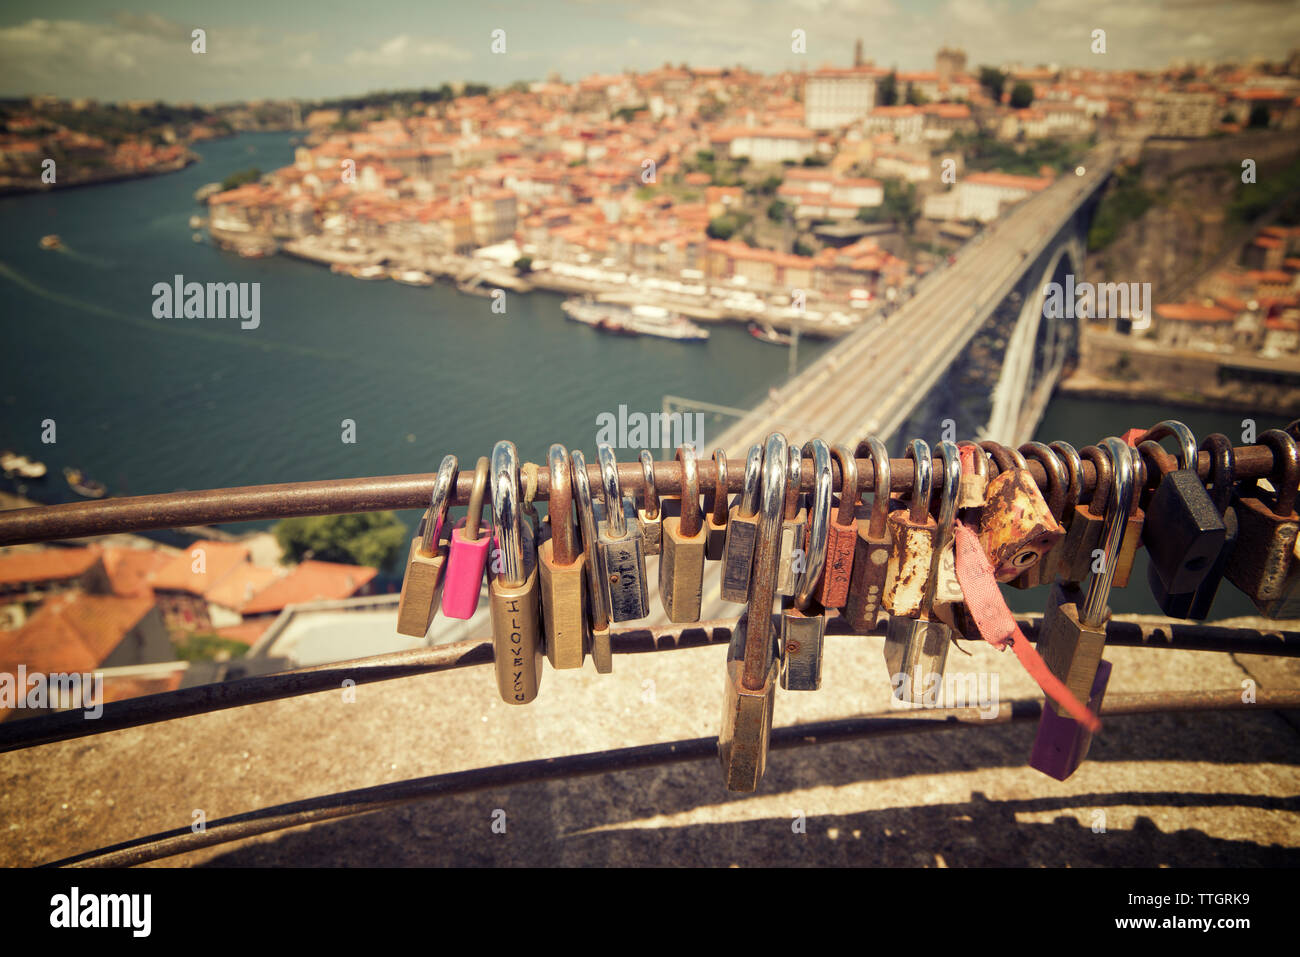 High angle view of padlocks on railing against cityscape Stock Photo